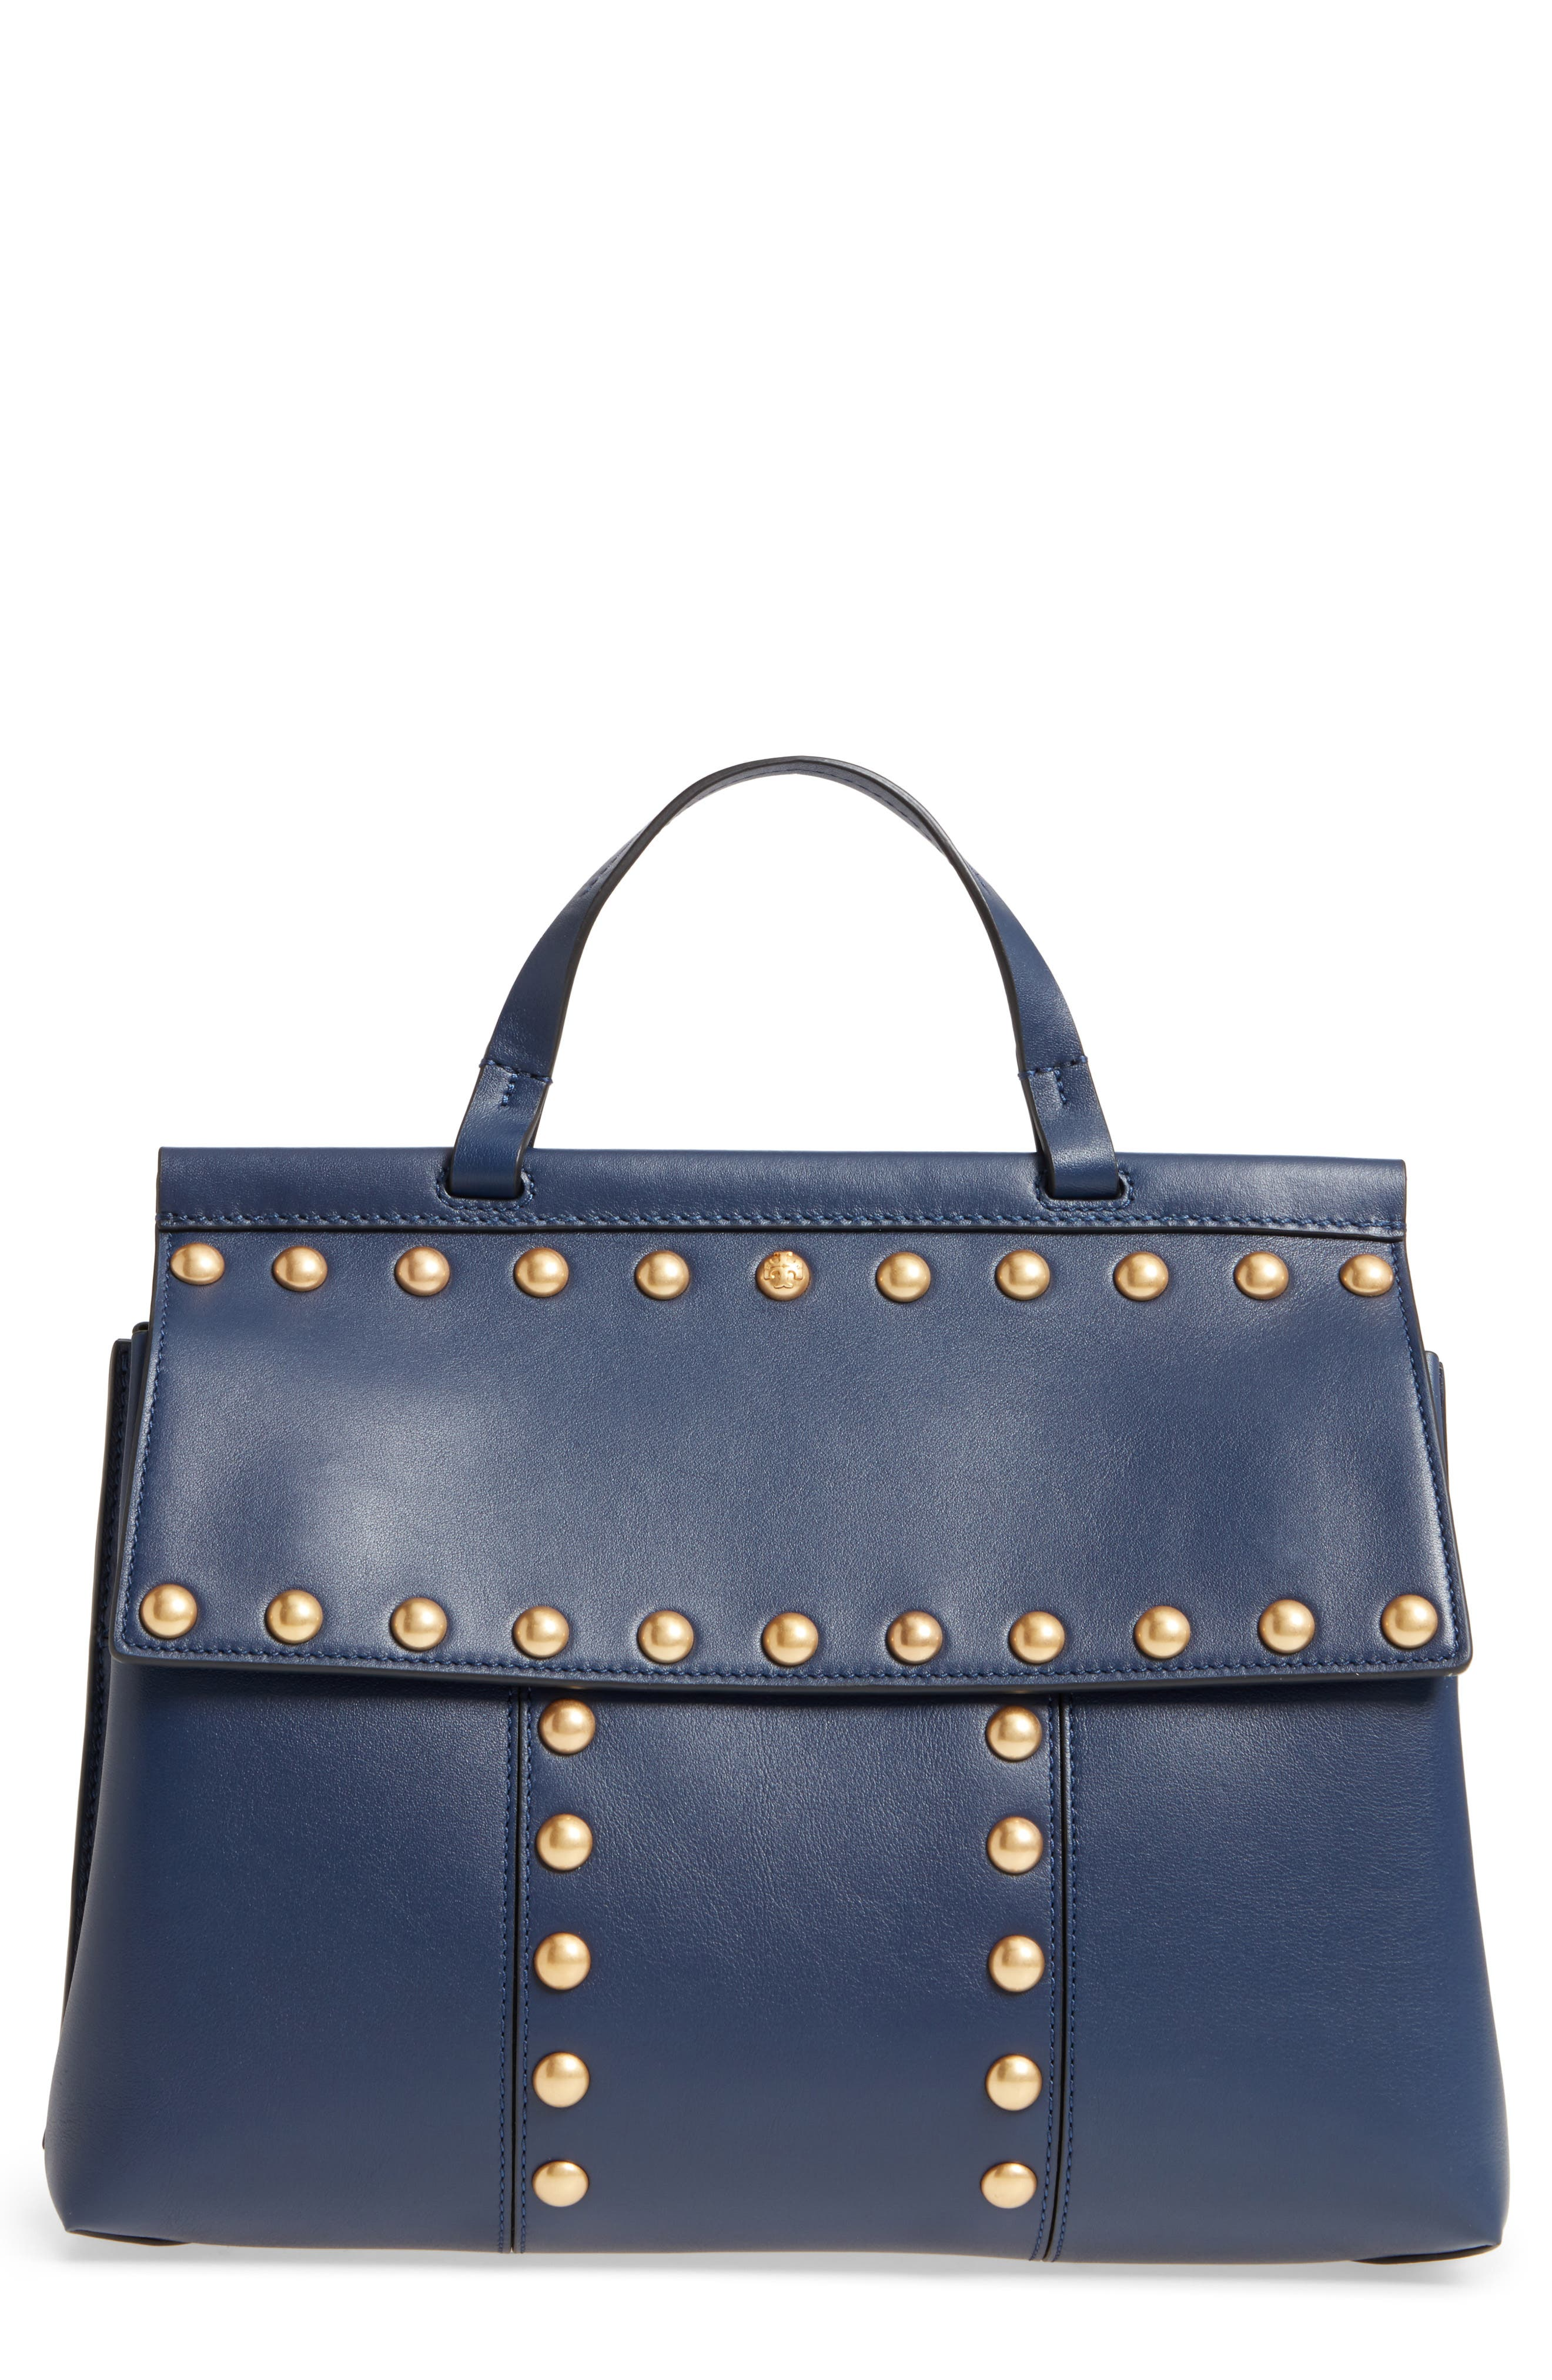 Block-T Studded Leather Top Handle Satchel,                         Main,                         color, Royal Navy